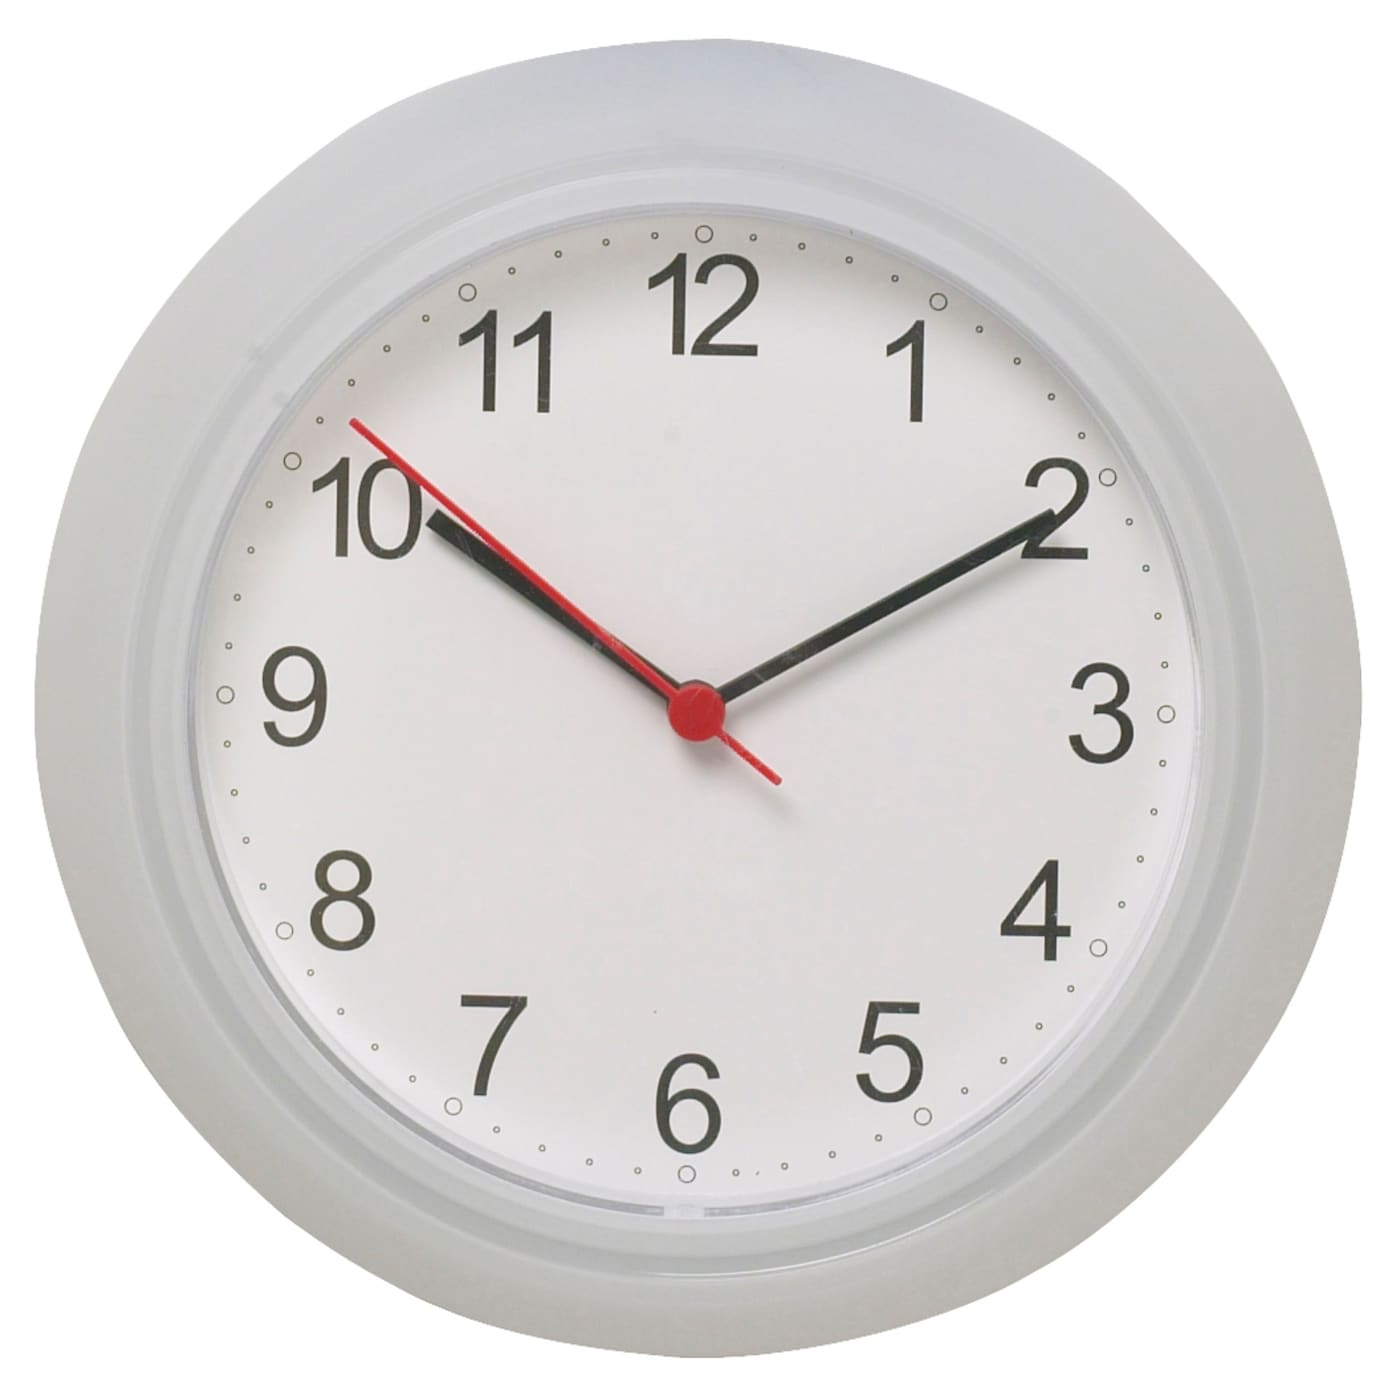 IKEA RUSCH wall clock Highly accurate at keeping time as it is fitted with a quartz movement.